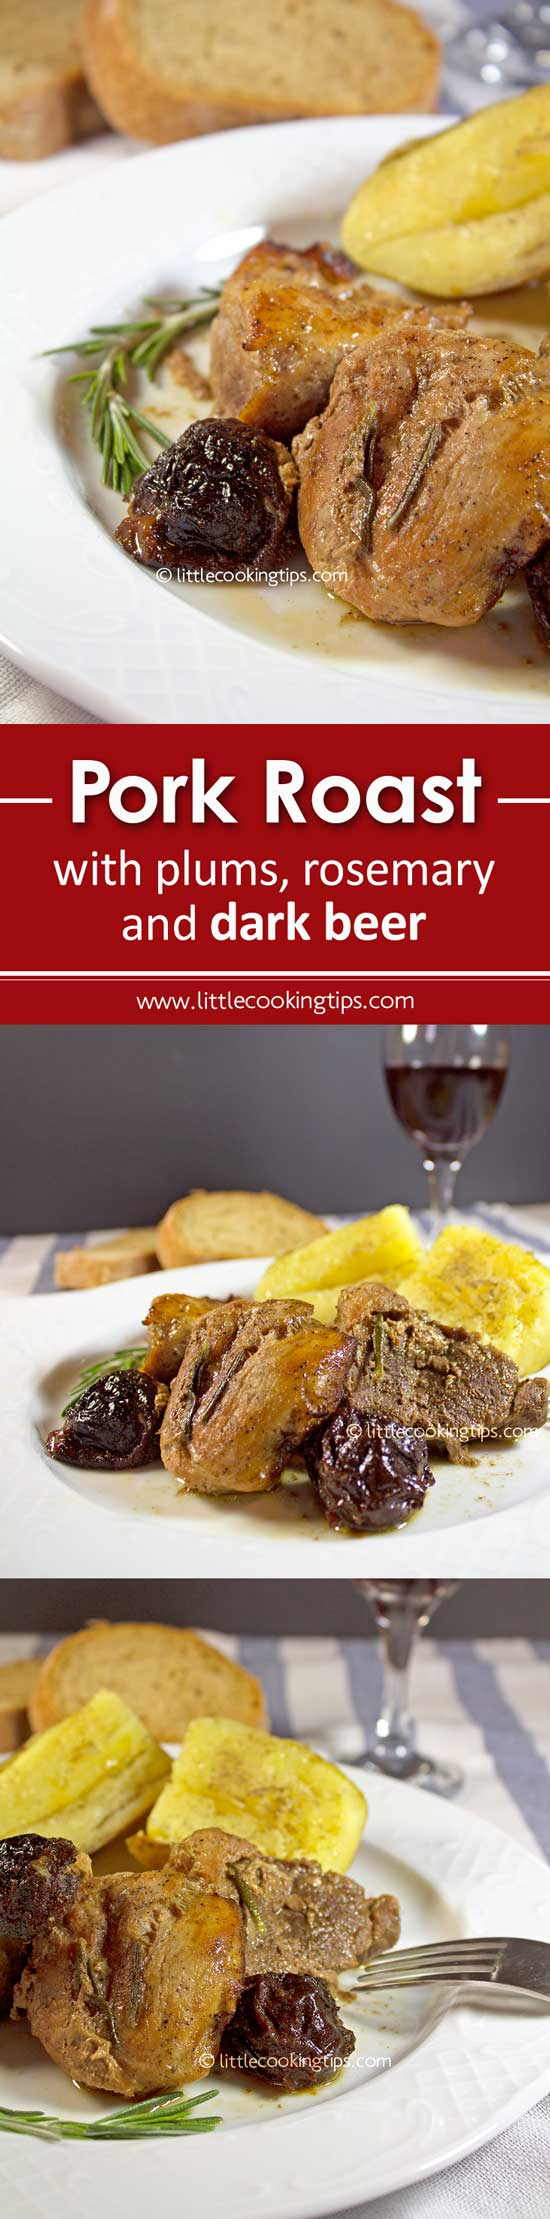 Pork Roast with plums, rosemary and dark beer